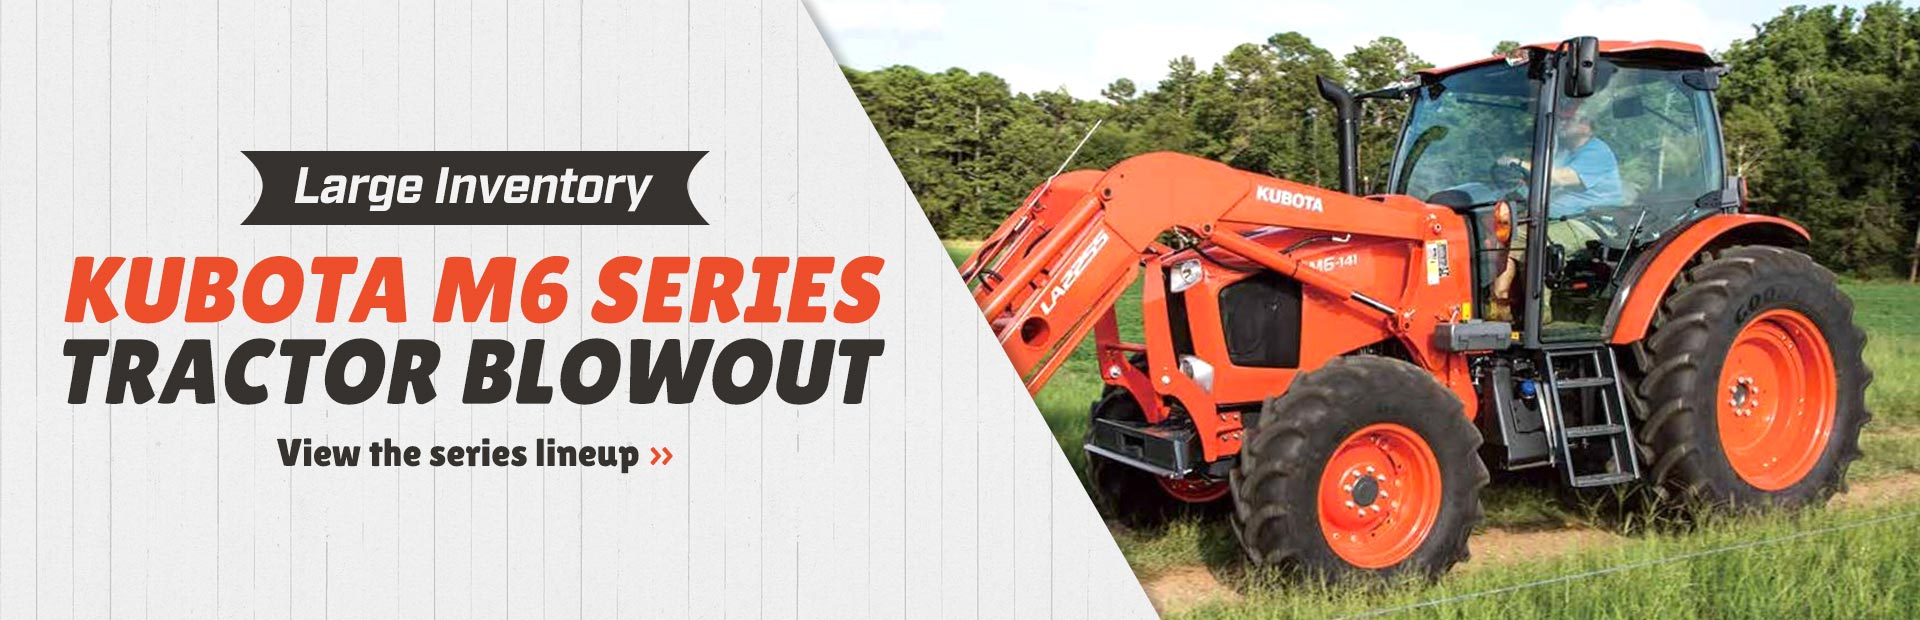 Kubota M6 Series Tractor Blowout: Click here to view the series lineup.